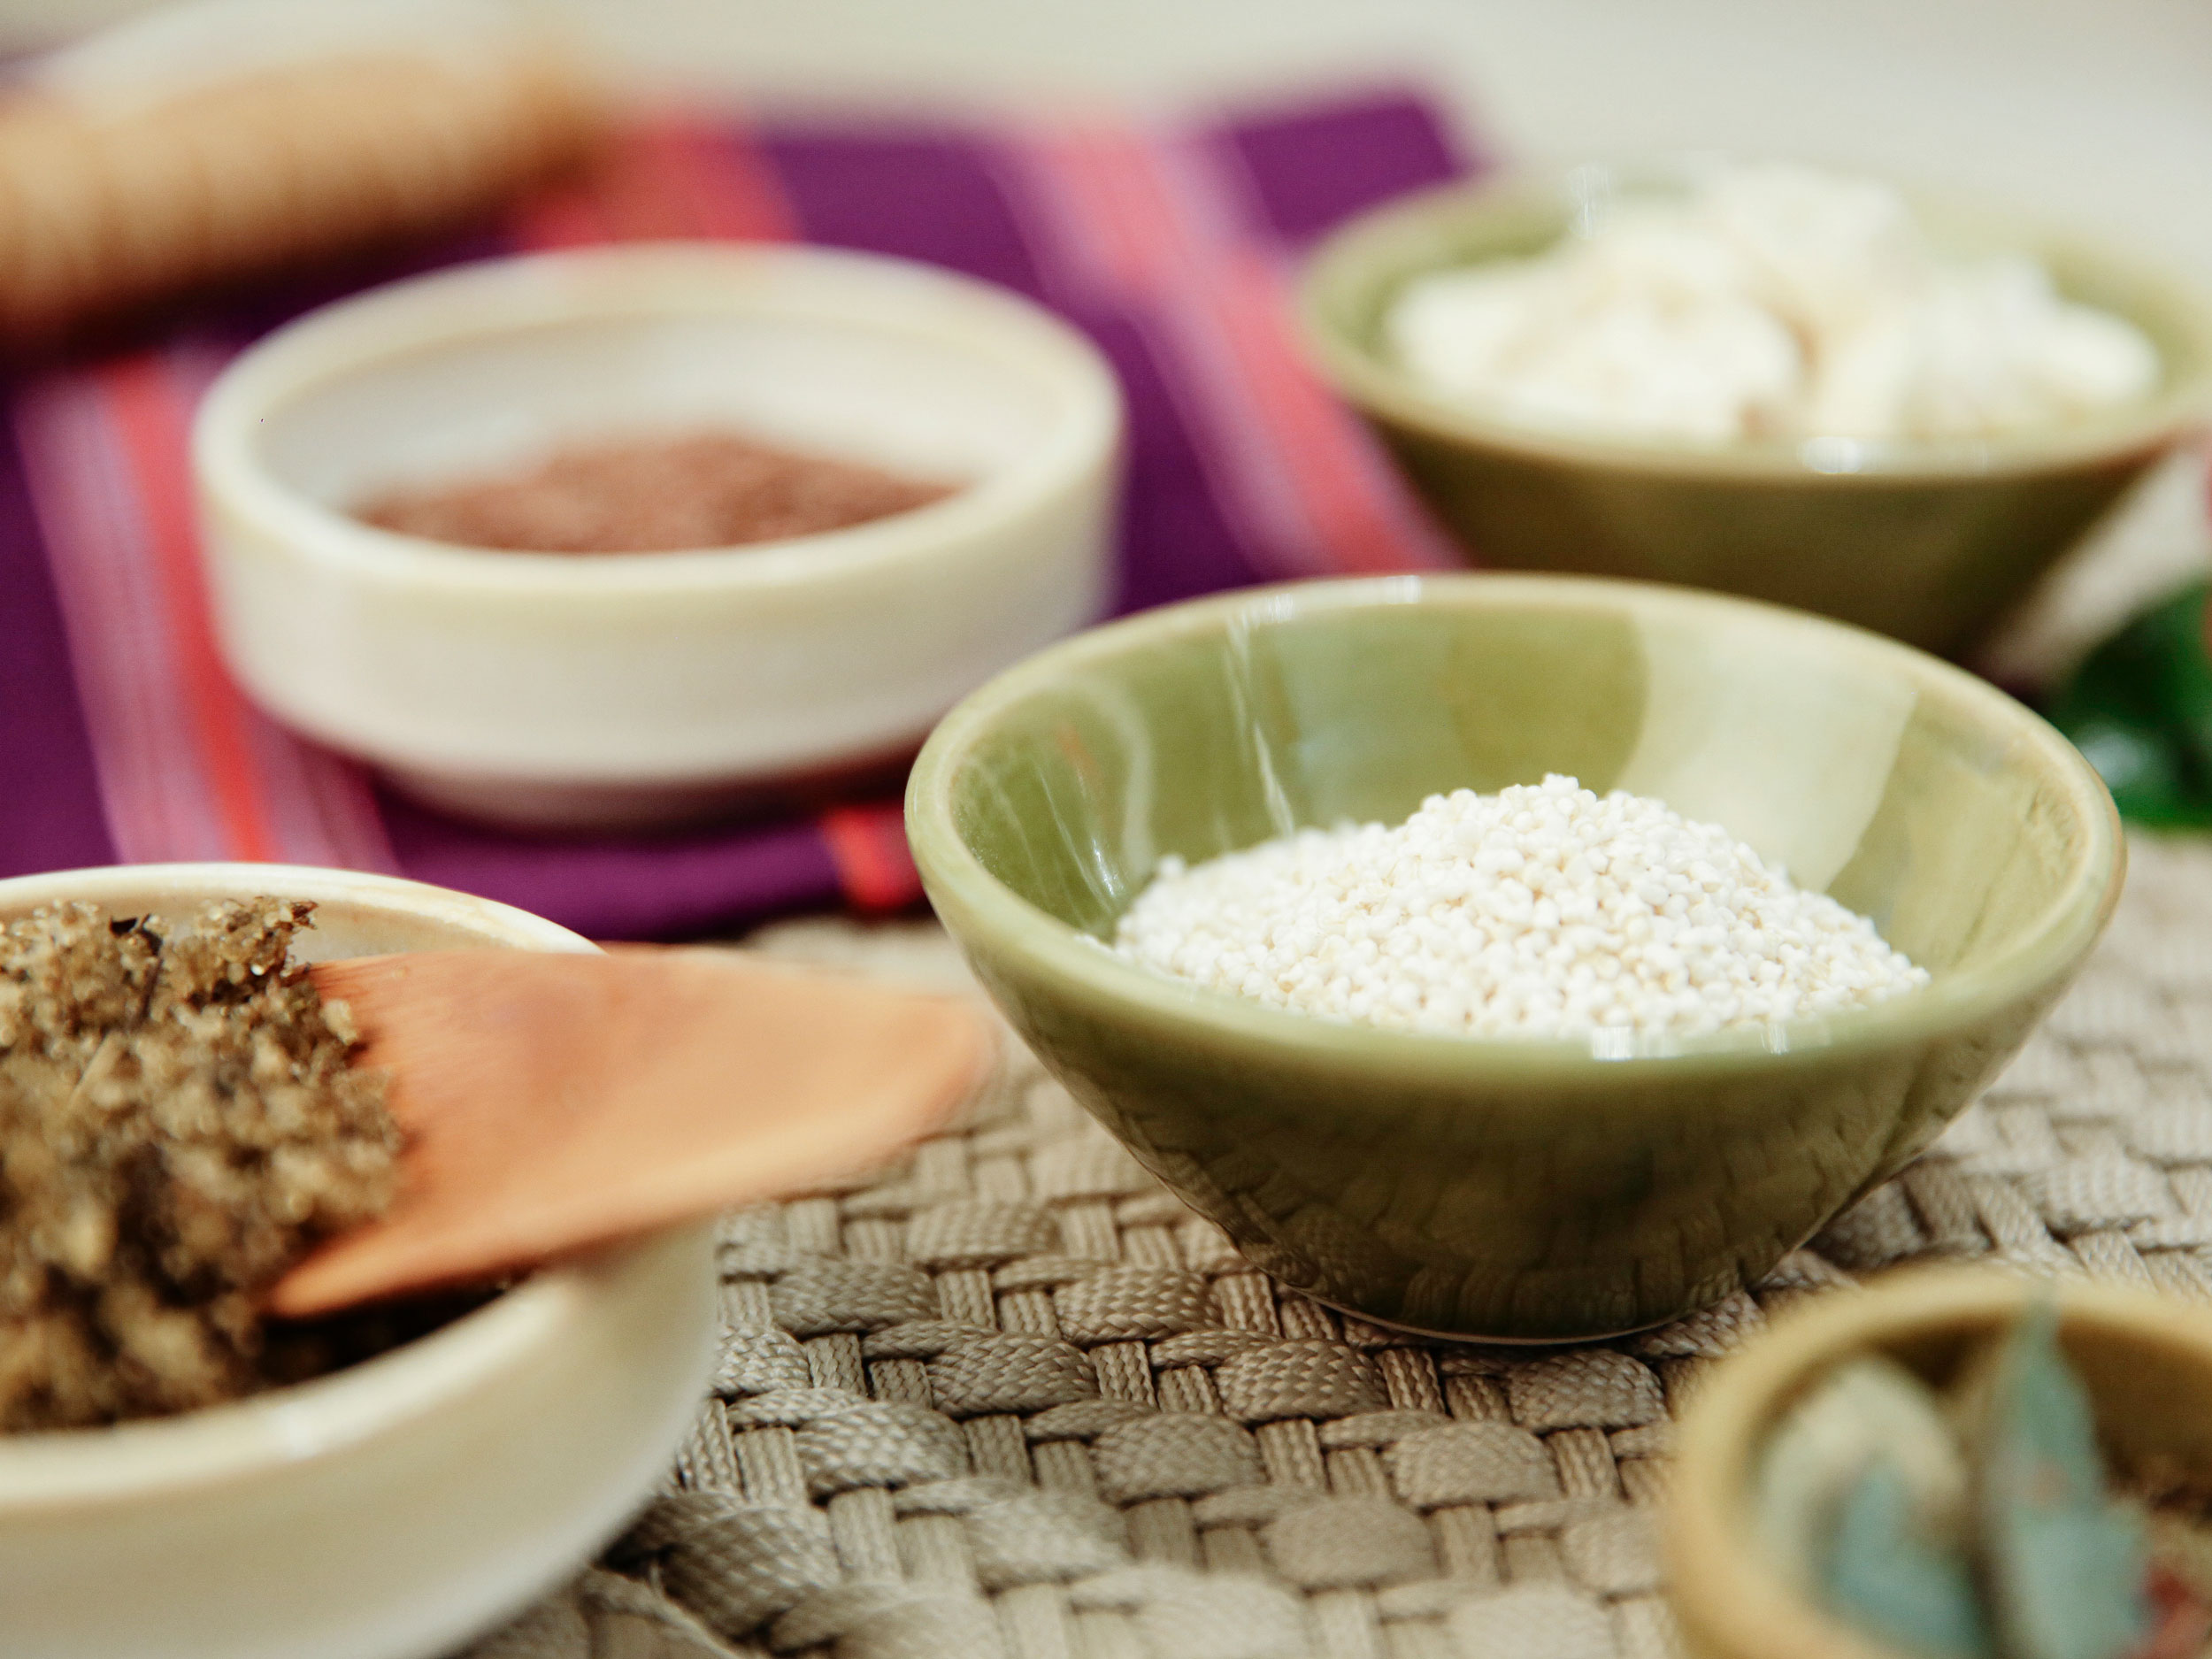 Rejuvenating Massage Treatment Ingredients at Our Cancun Spa Resort